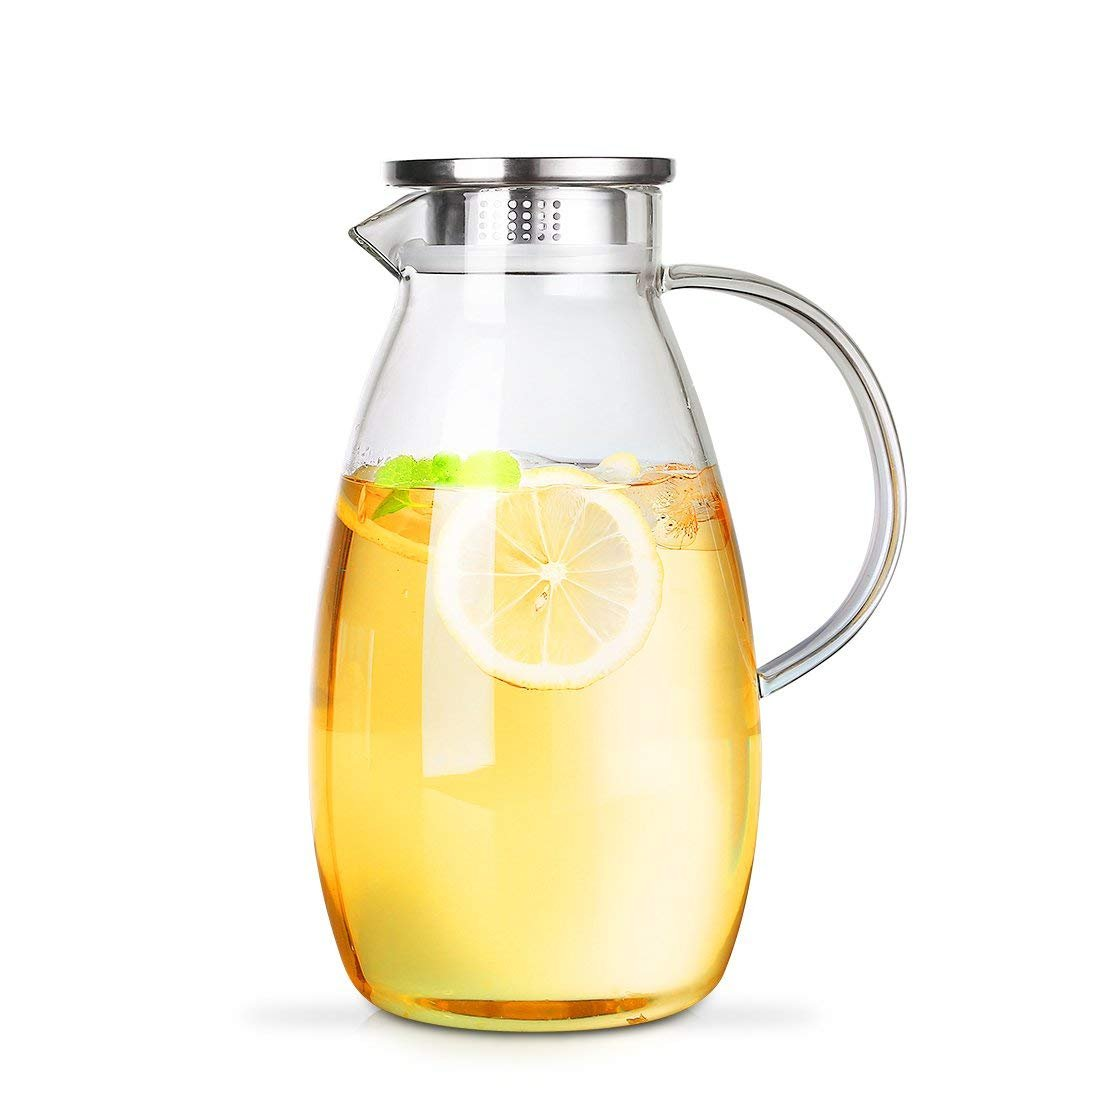 RED MAISON 68 Ounces Large Capacity Borosilicate Glass Water Pitcher with Lid, Glass Water Jug for Hot or Cold Water, Ice Tea and Juice Beverage (2000ml) (68oz with stainless lid)